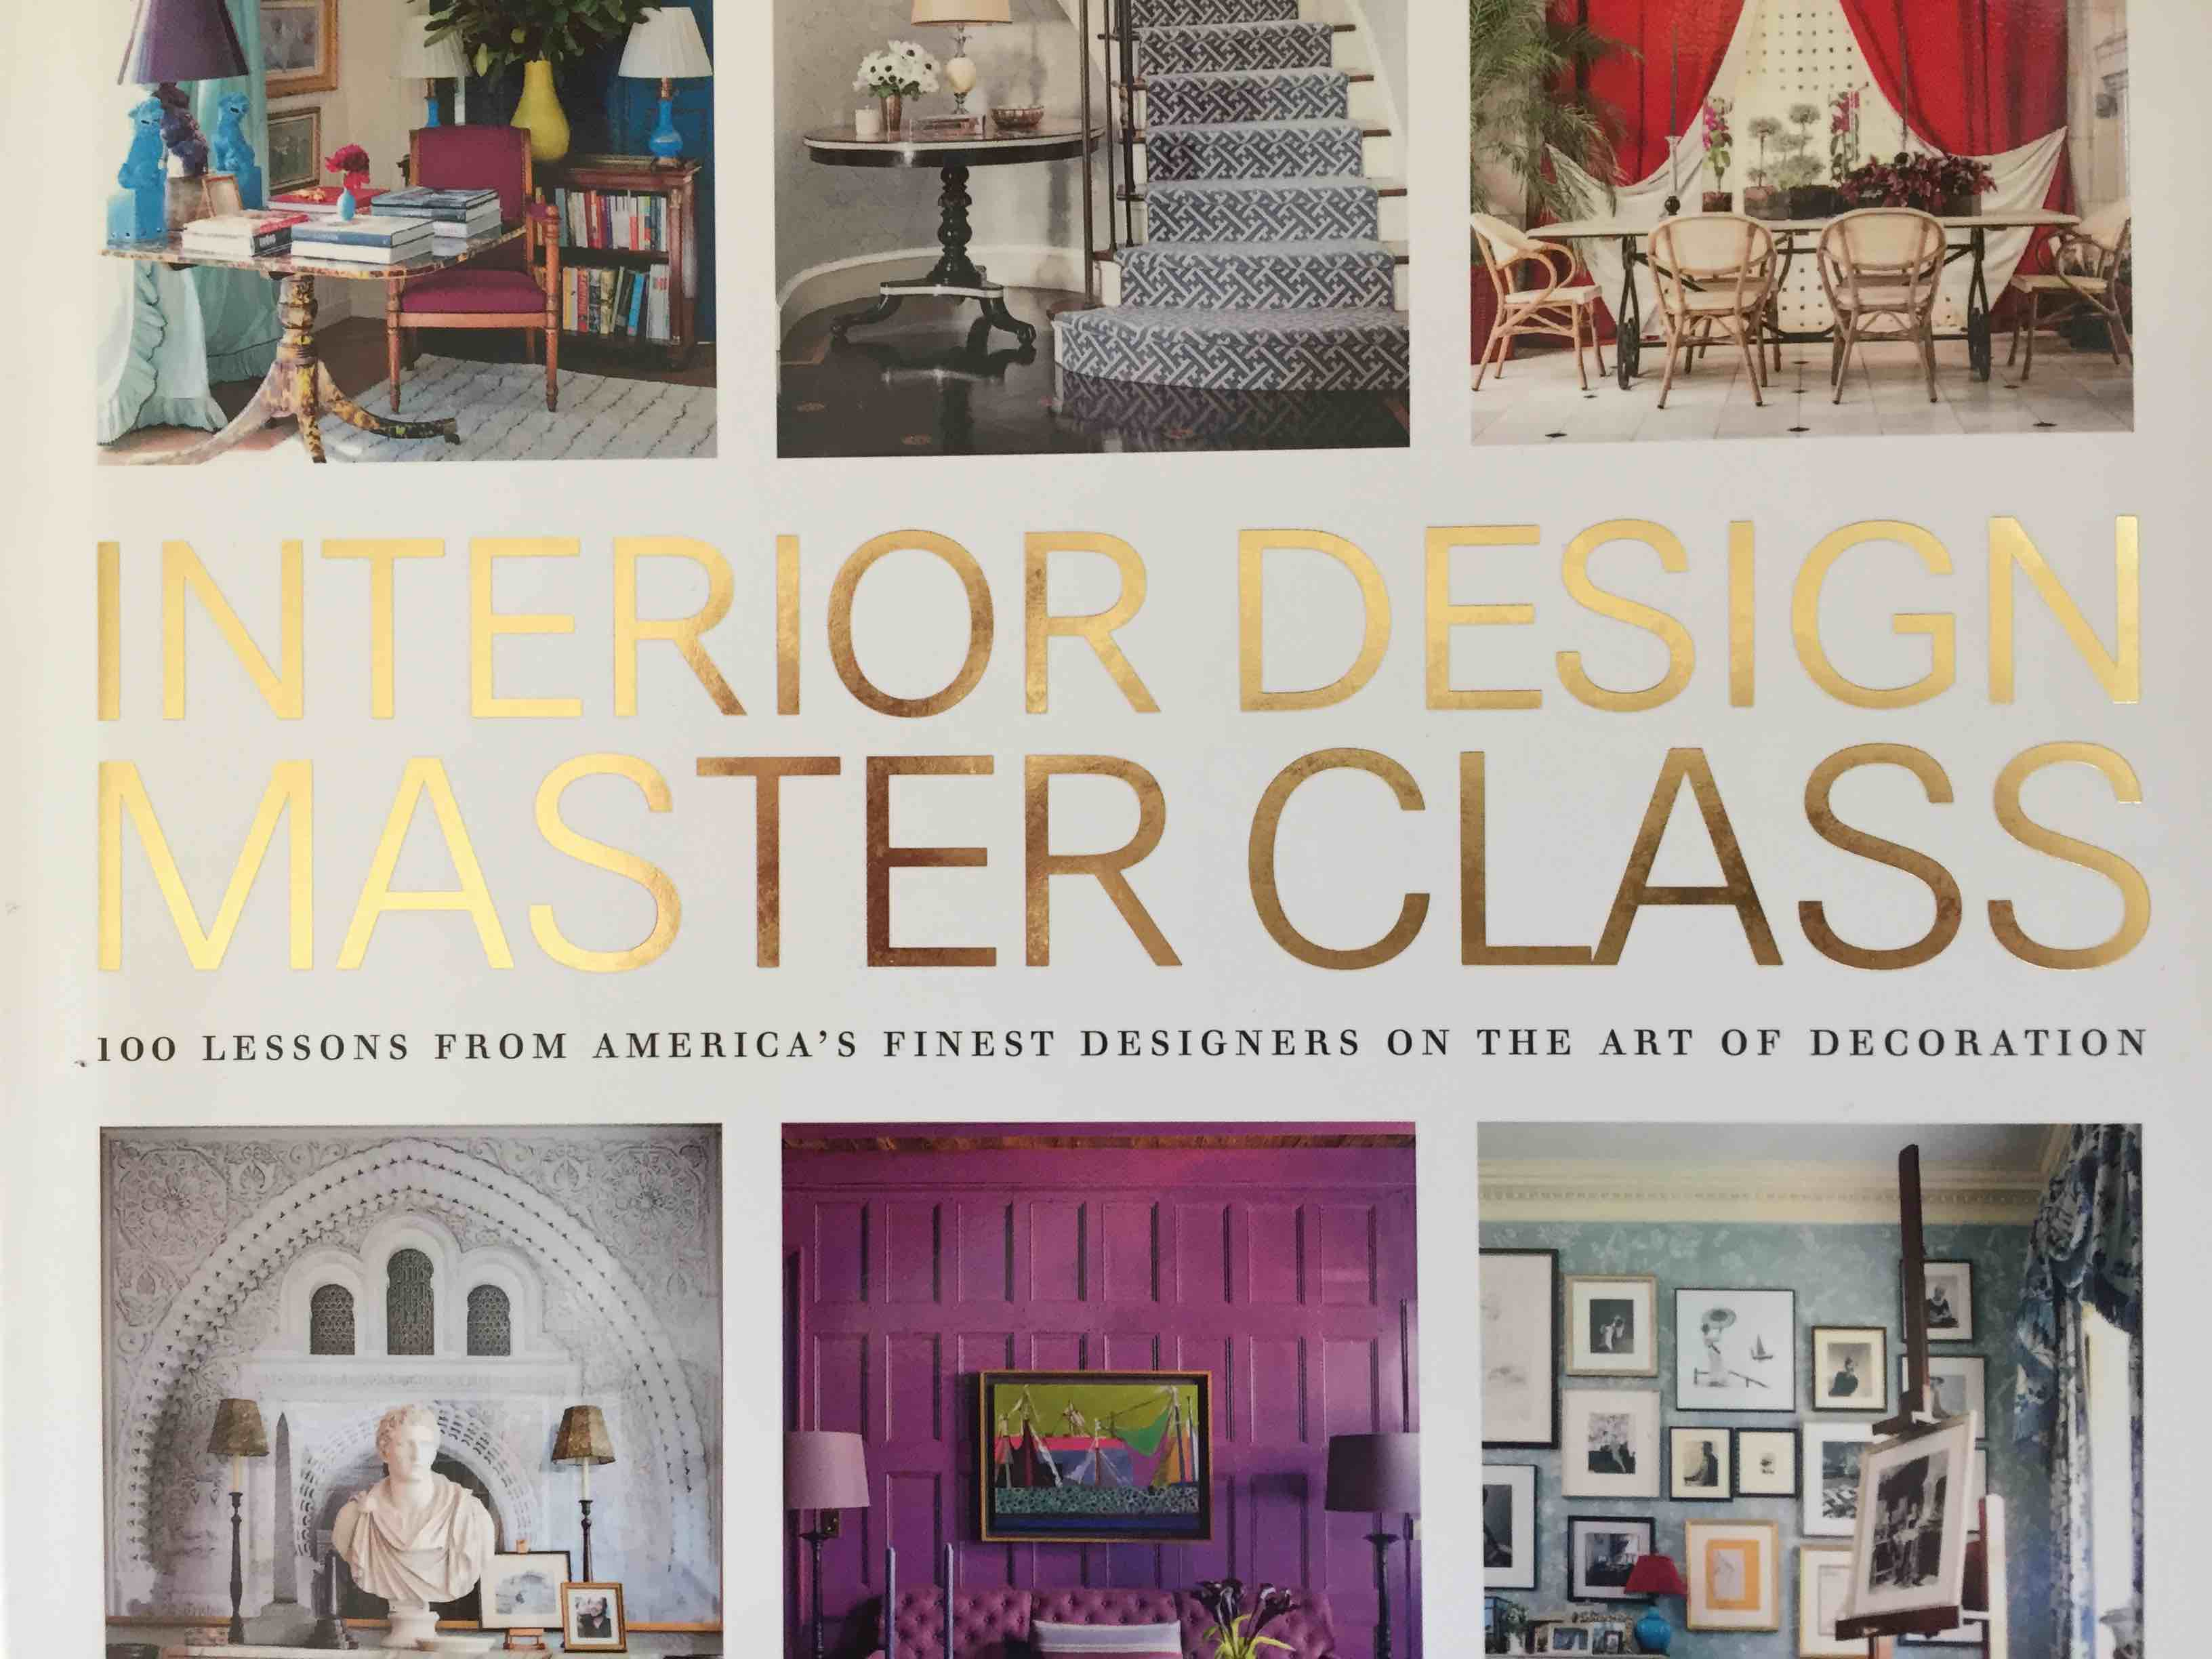 Interior-design-masterclass-carl-dellatore-books-interior-decorating-rizzoli